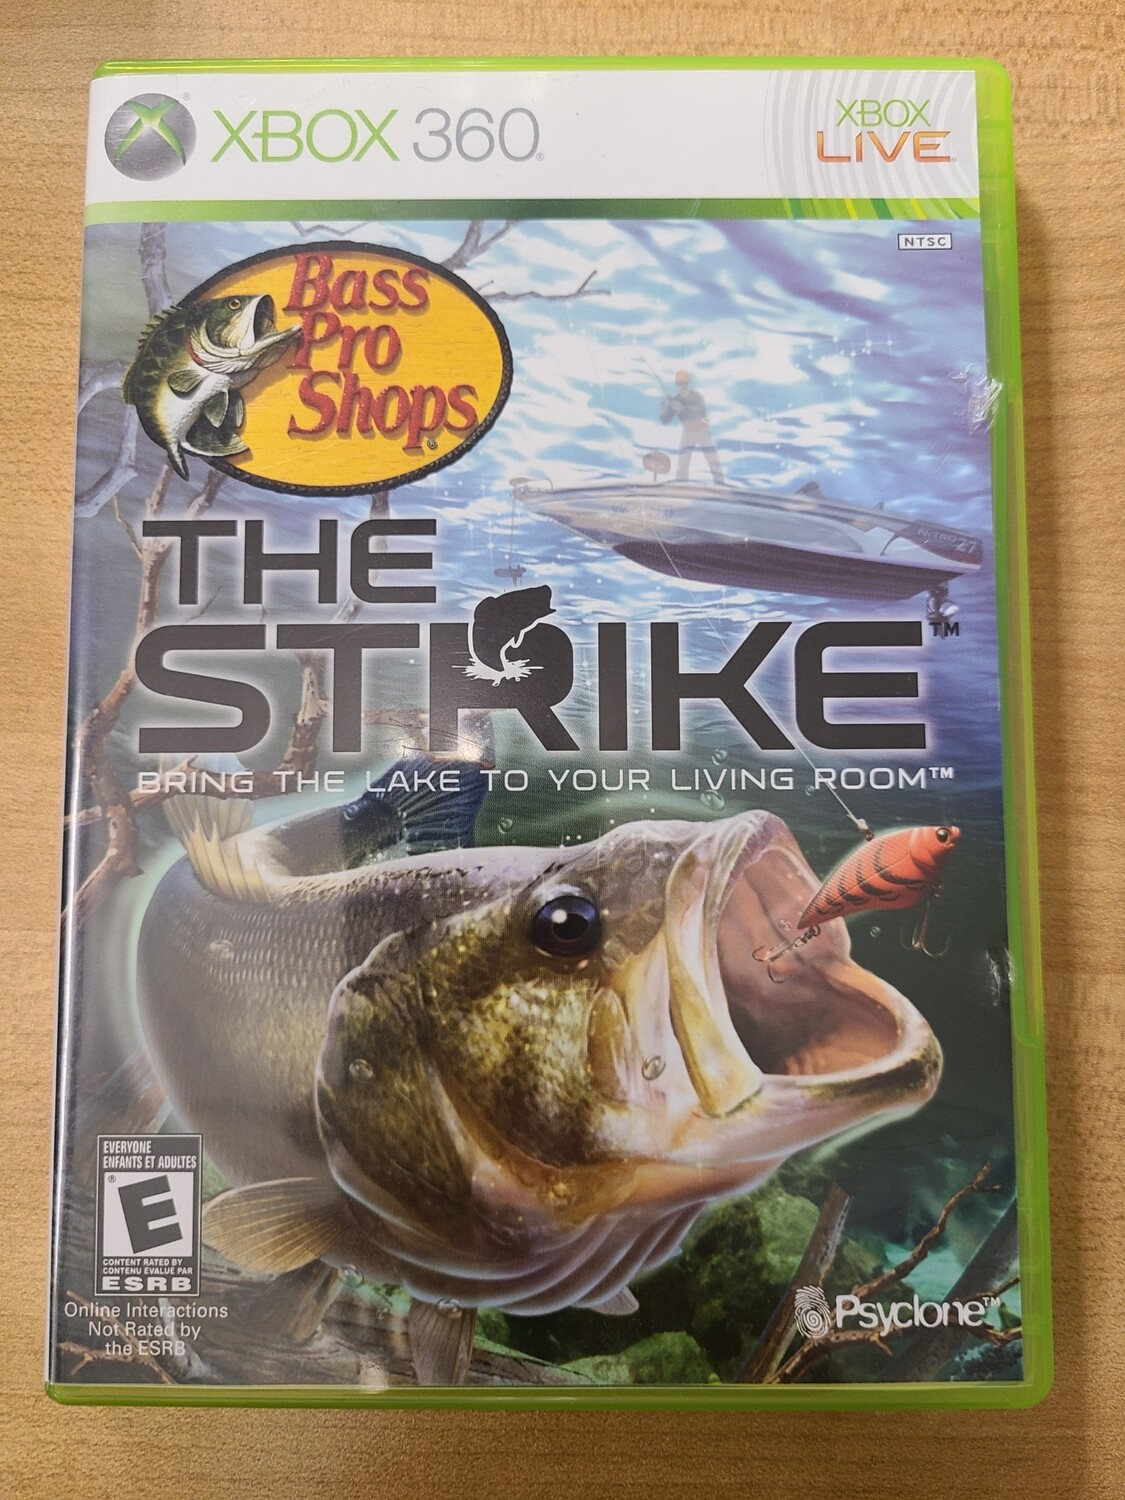 Bass Pro Shops: The Strike - Xbox 360